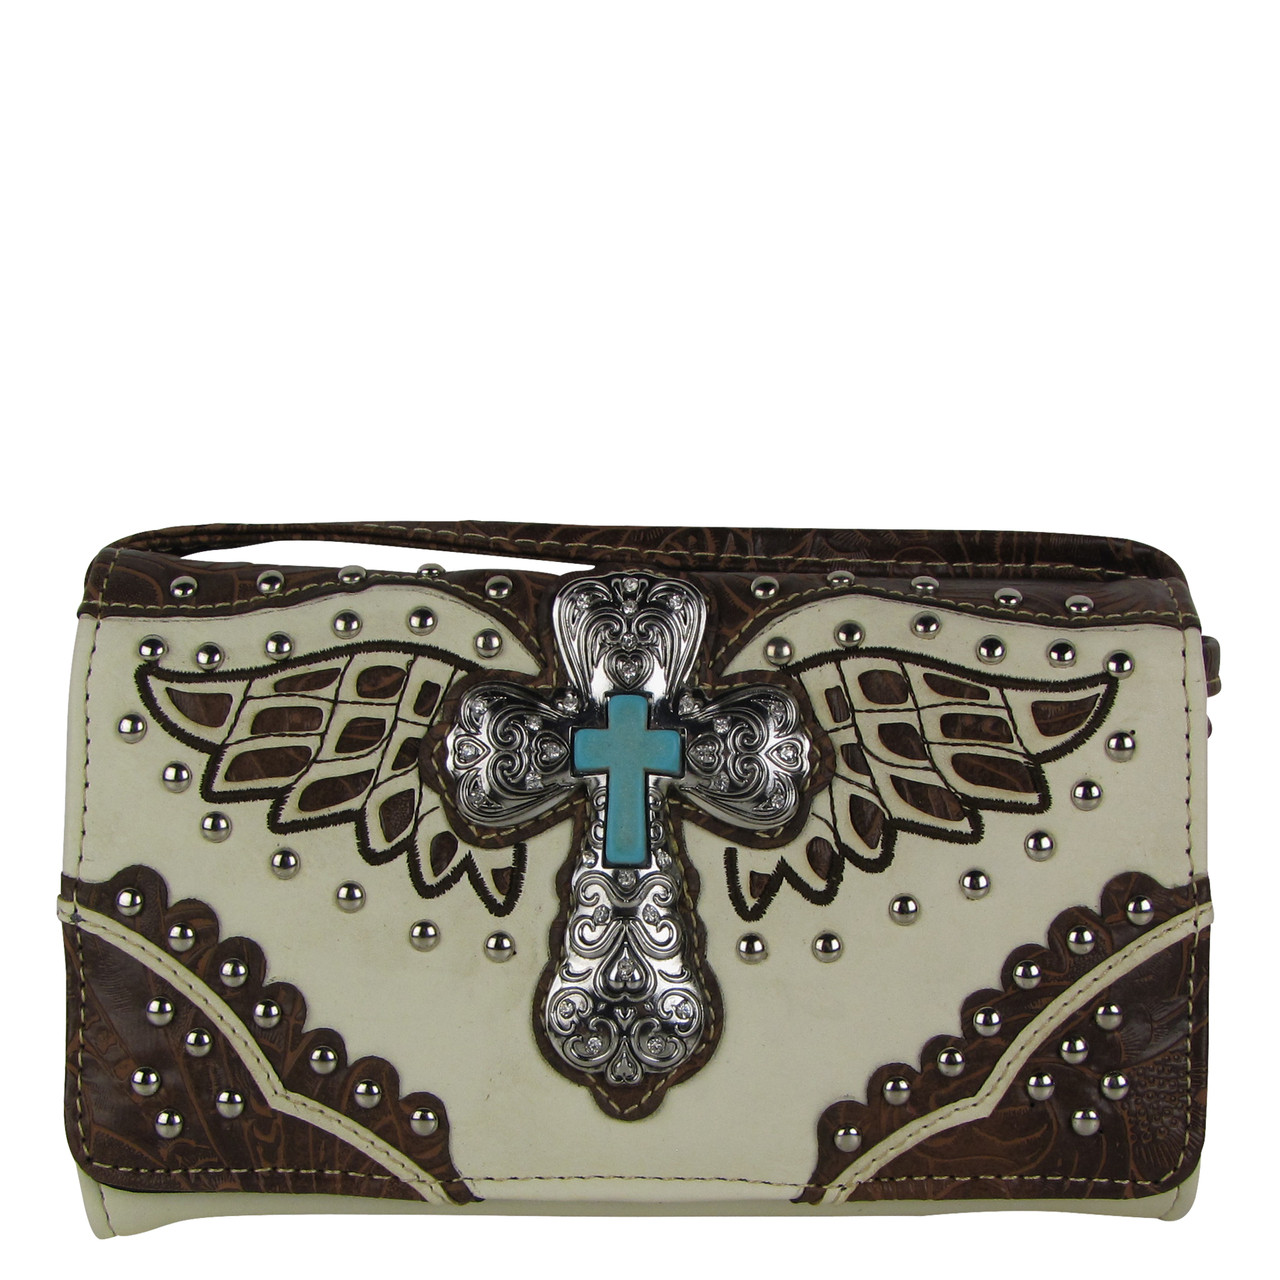 BEIGE WESTERN CROSS WITH WINGS LOOK CLUTCH TRIFOLD WALLET CW1-1278BEI